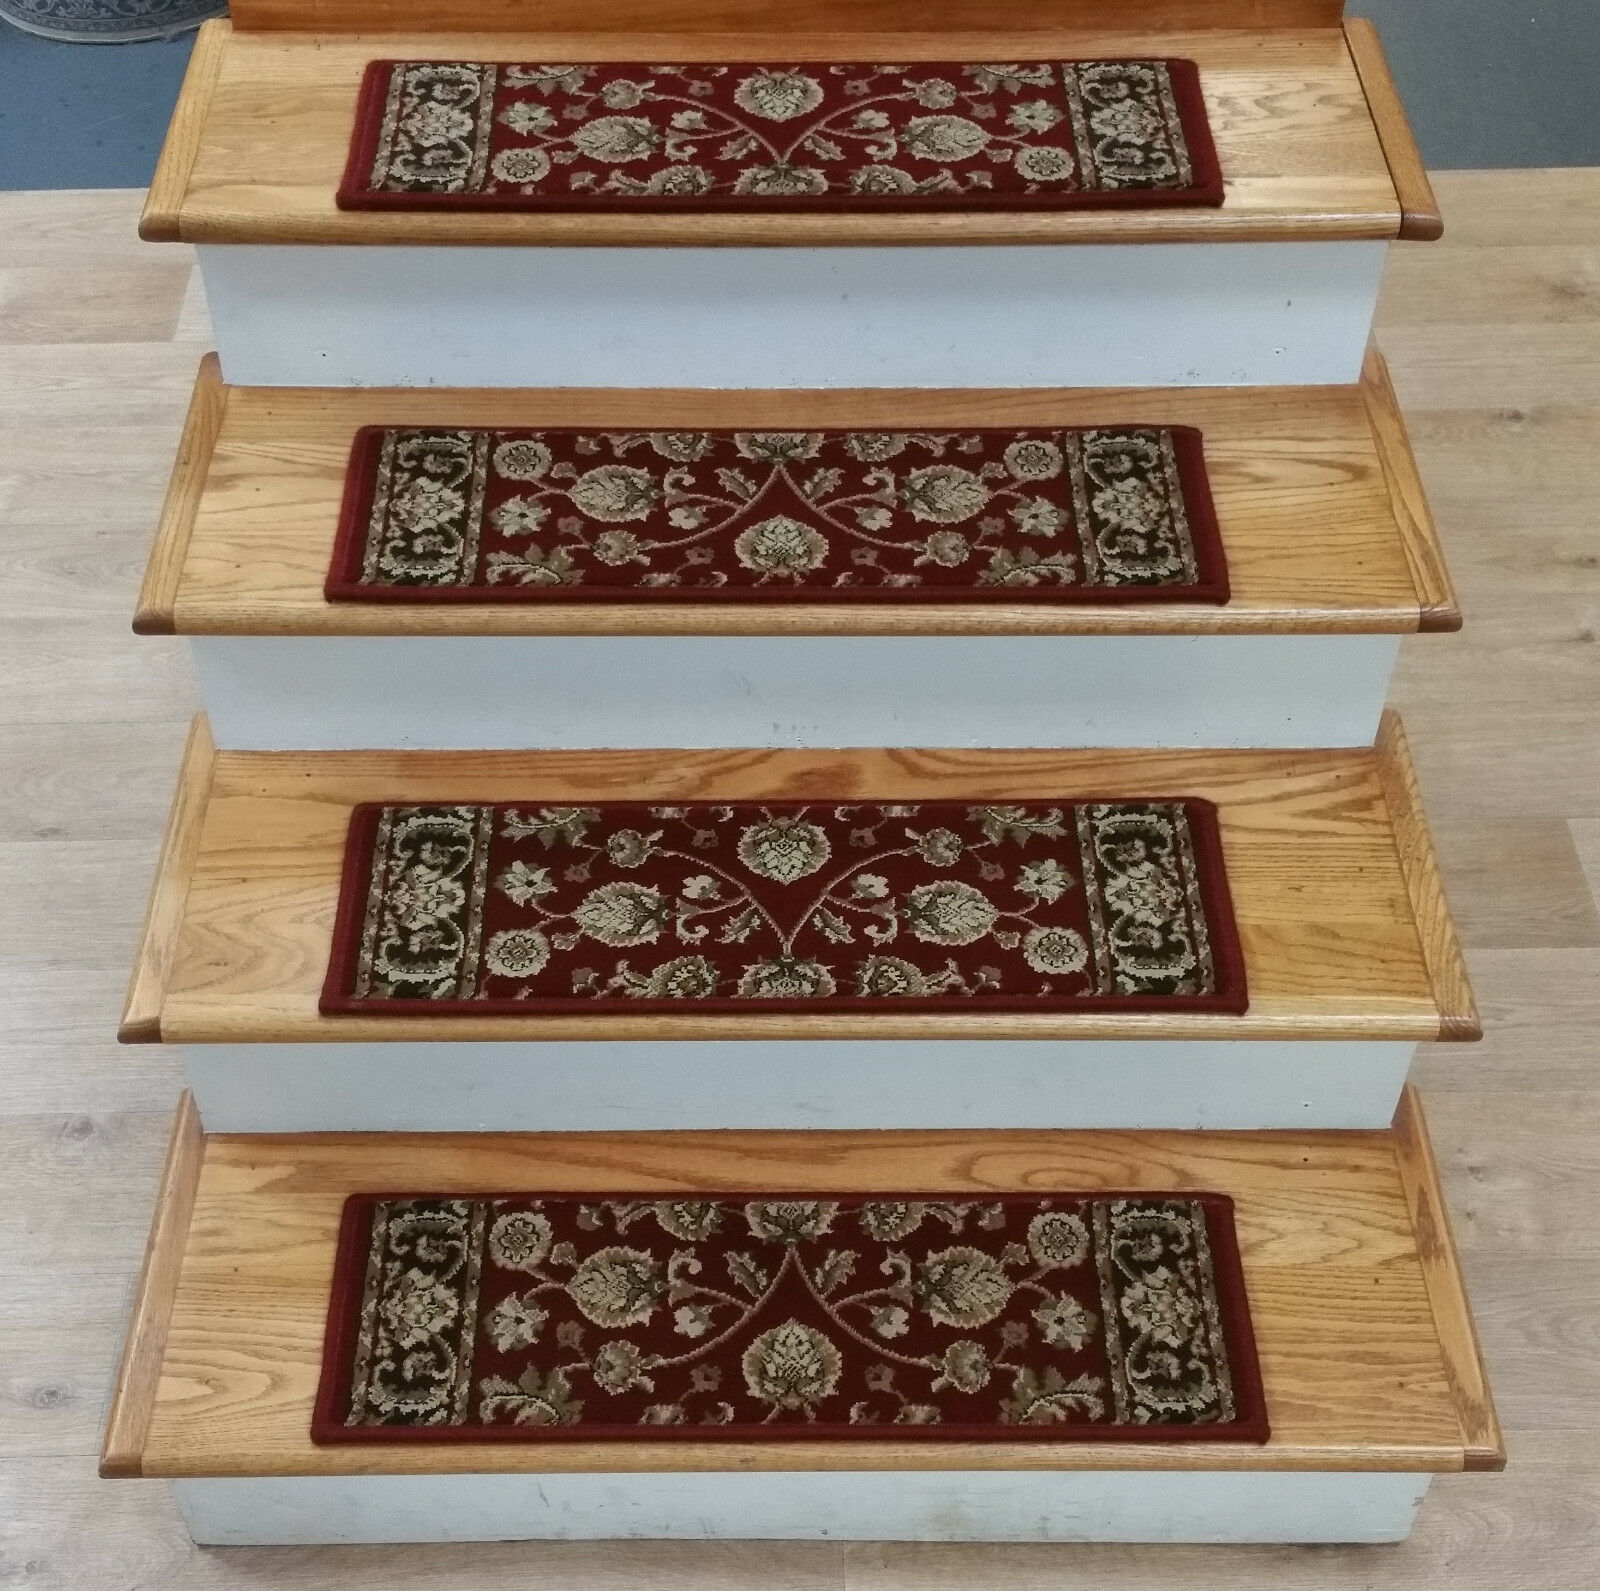 Rug Depot 13 Traditional Non Slip Carpet Stair Rugs Treads 26 X9